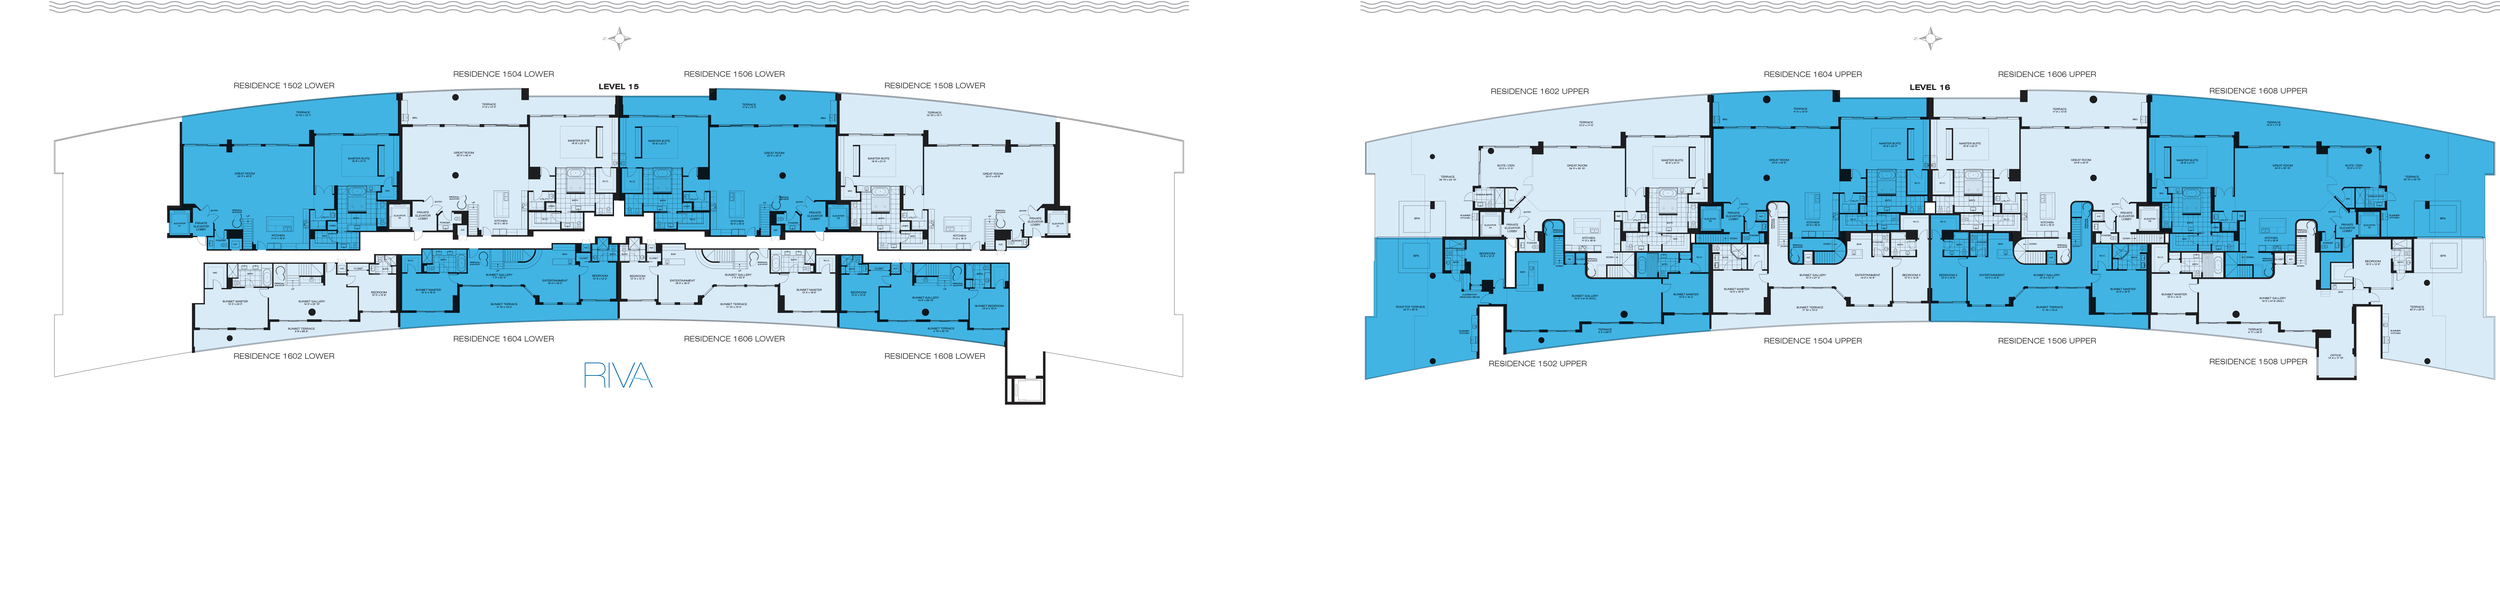 Riva Ft.Lauderdale Penthouse Key Plan